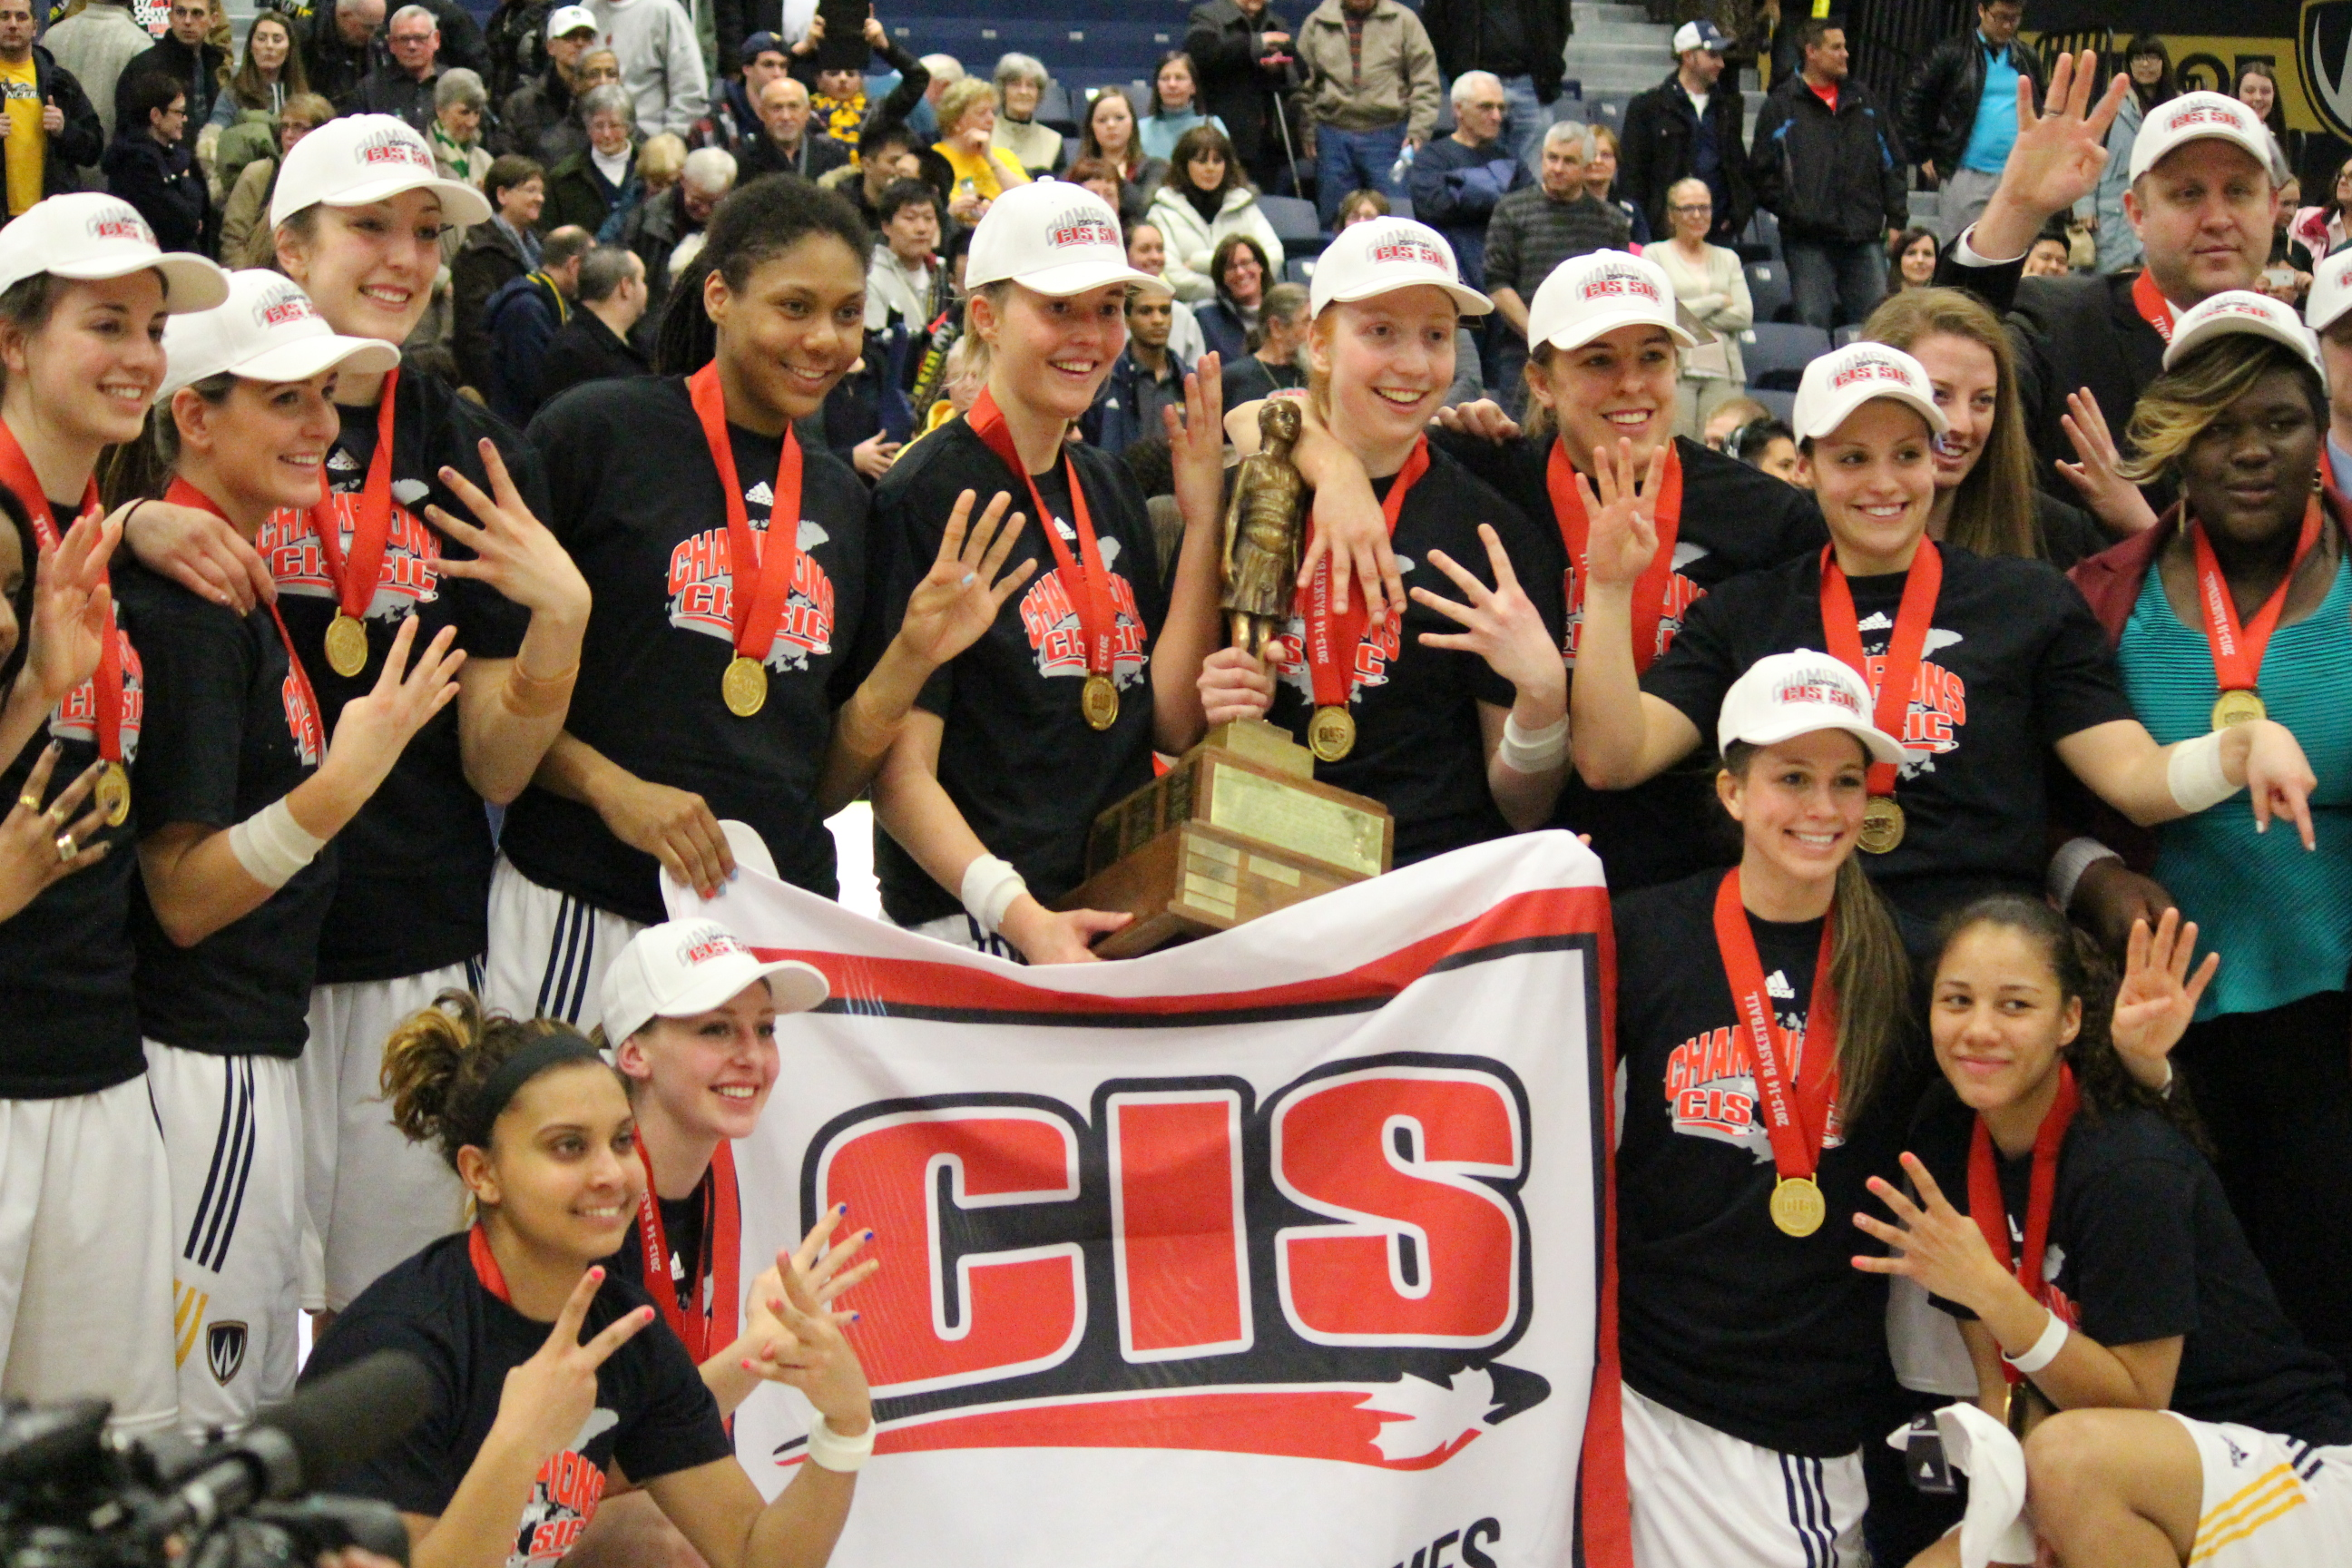 The Windsor Lancers pose for their team photo after winning the 2013/2014 CIS Women's Basketball Championship. March 16, 2014. (Ricardo Veneza)